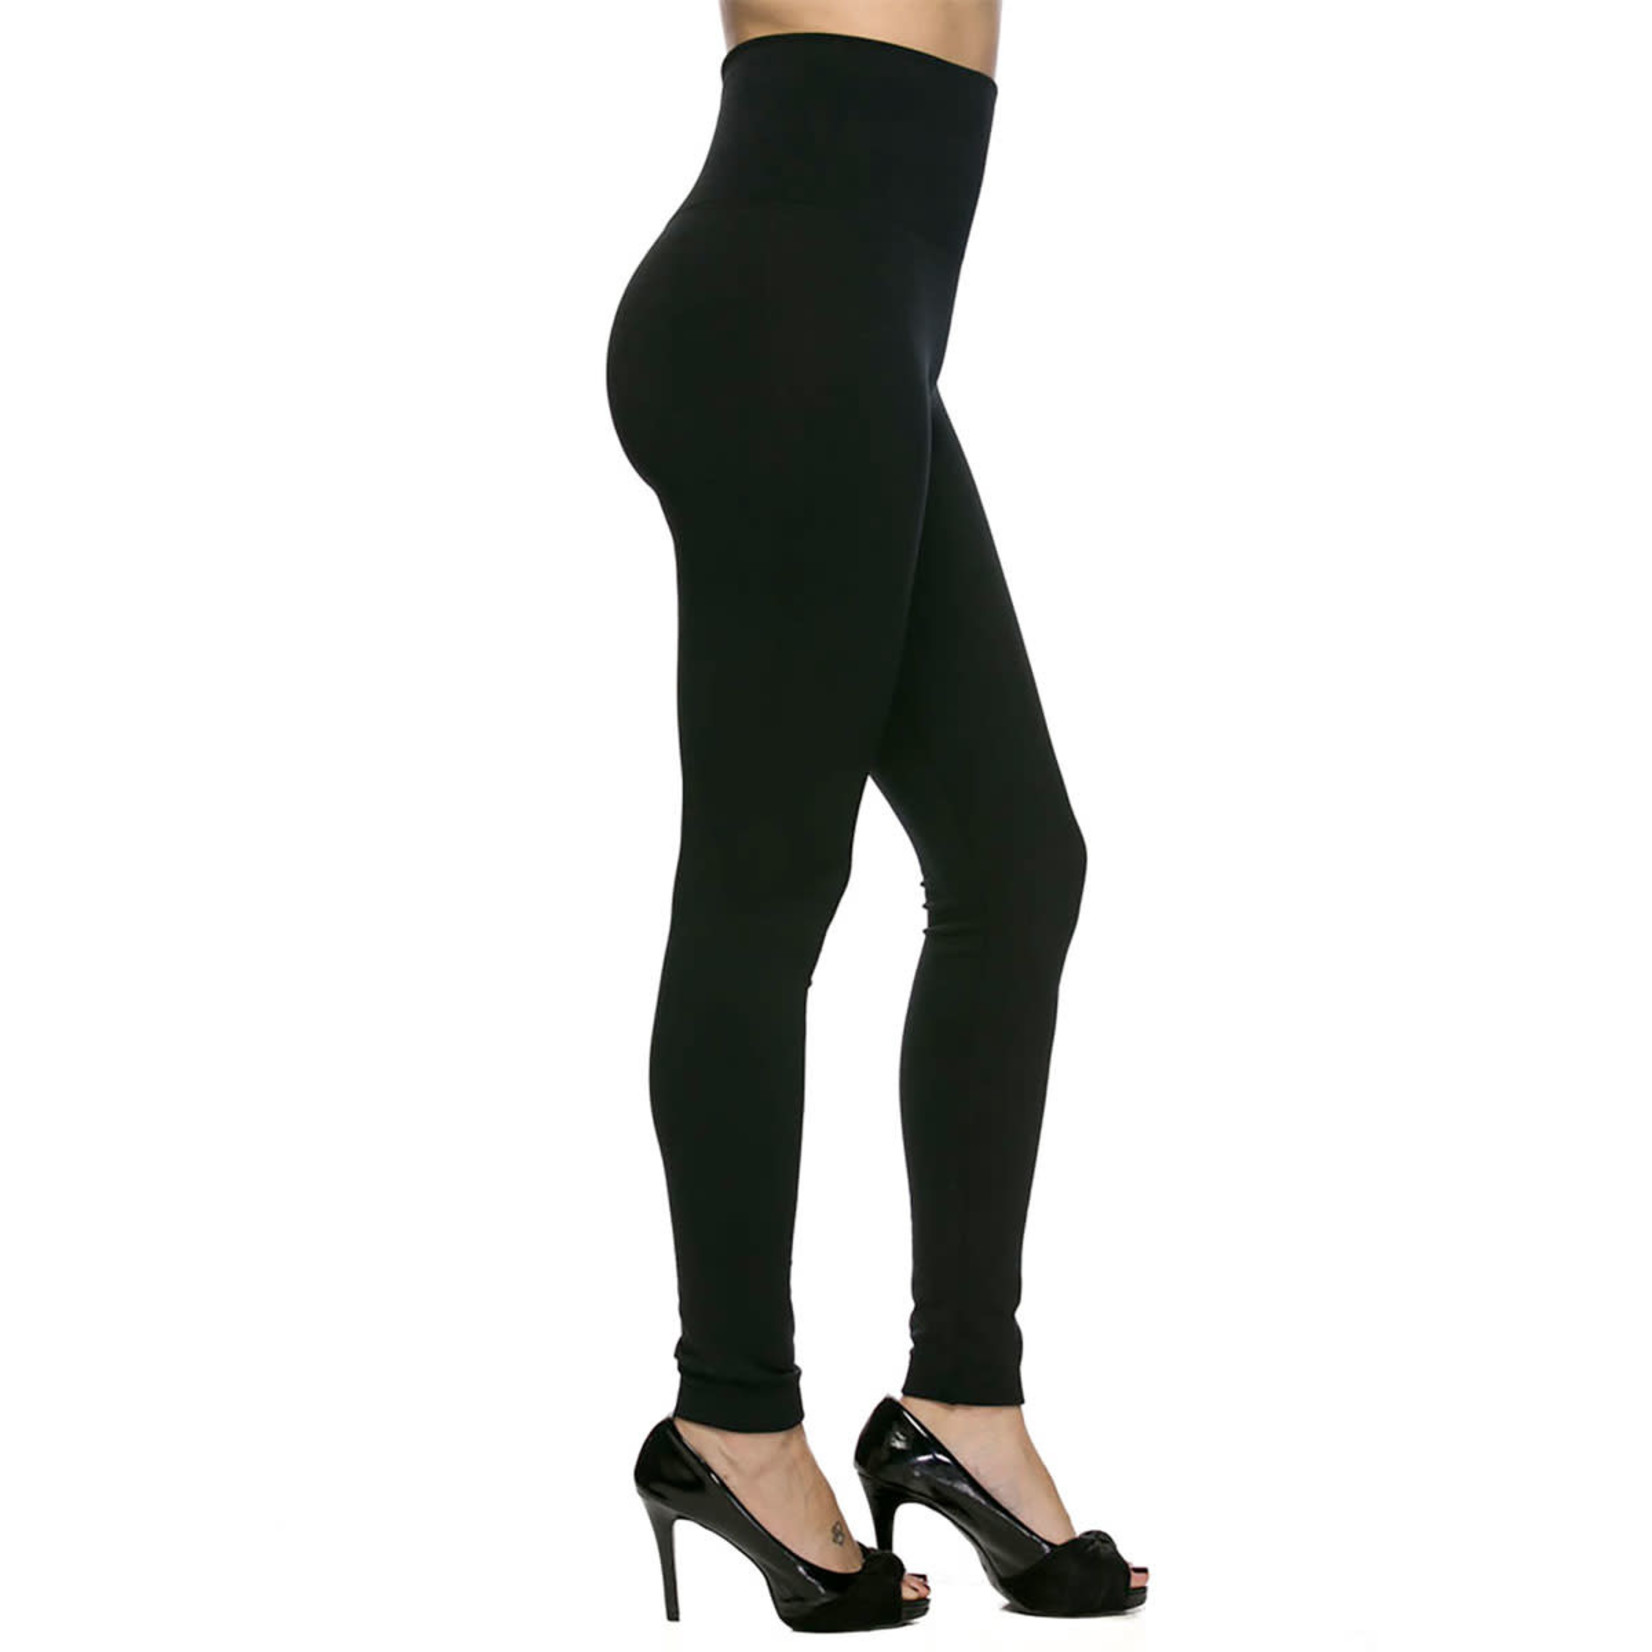 Black Fleece Lined Leggings With High Waist in Plus Size (XL-2X)